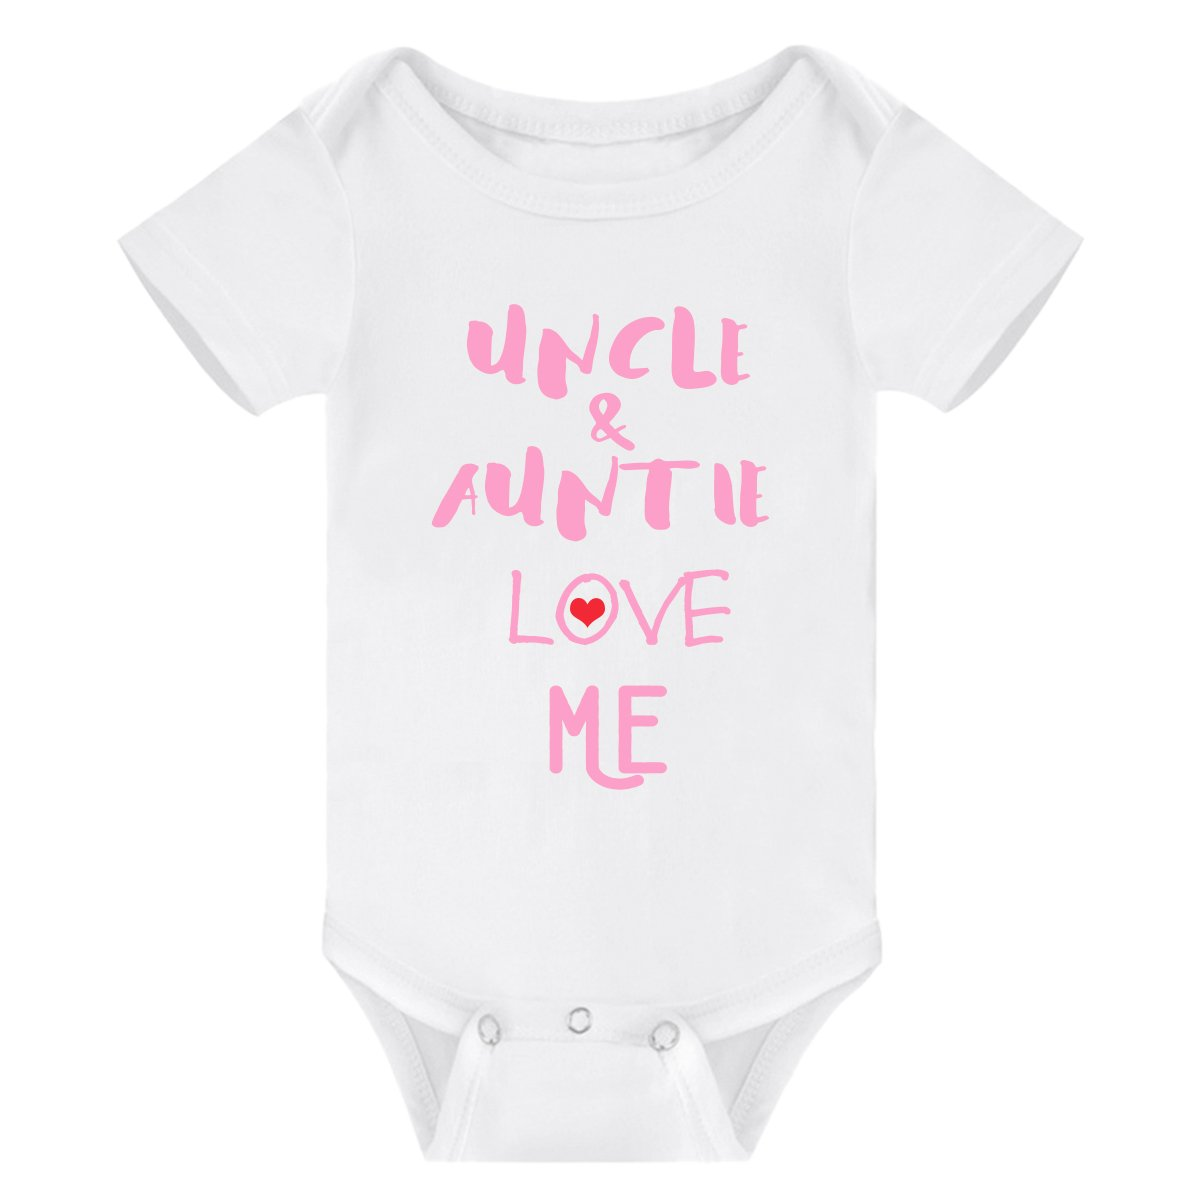 Winzik Newborn Baby Boys Girls Outfits Uncle Auntie Love Me Letters Print Baby Onesie Romper Jumpsuit T-Shirt (3-6 Months, White Pink)